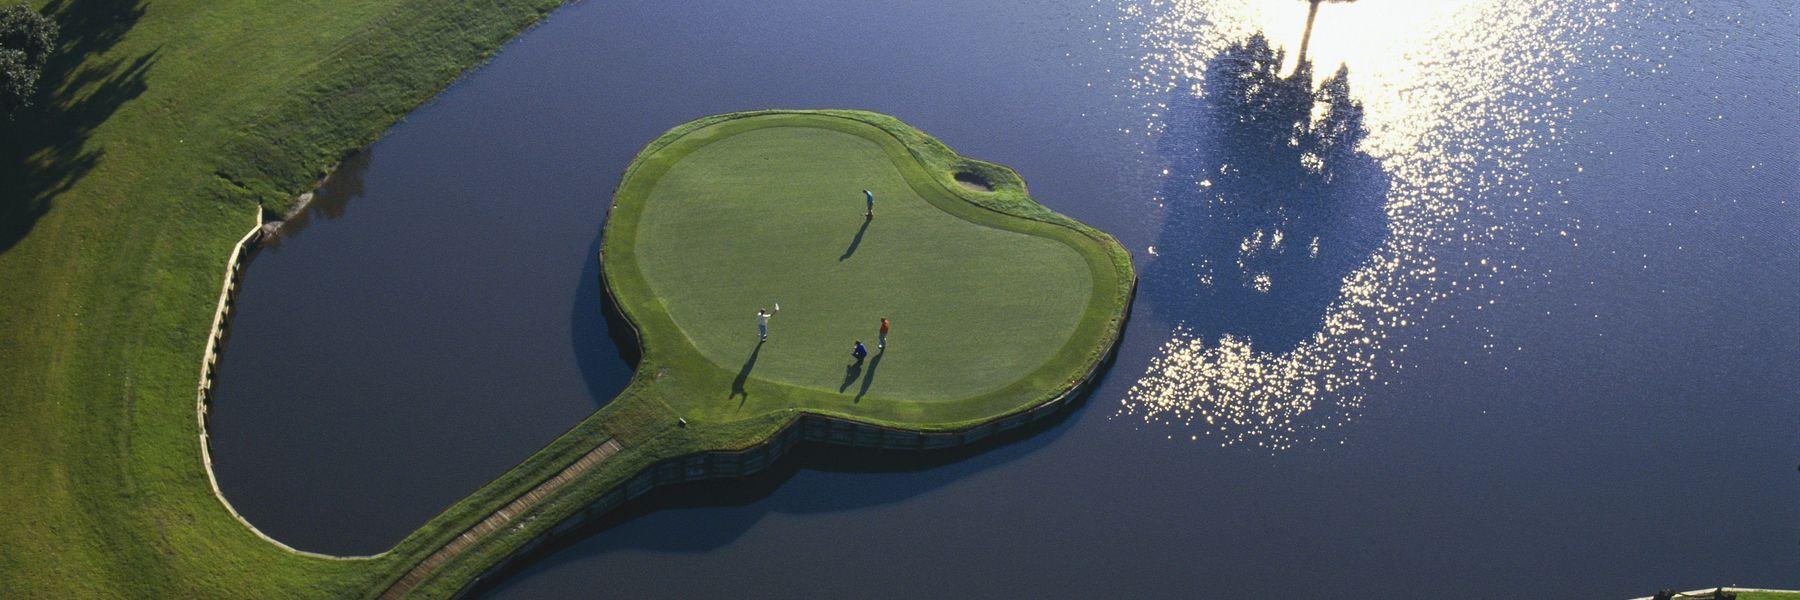 Golf Vacation Package - TPC Sawgrass Resort & PLAYERS Stadium Course for $327 per day!